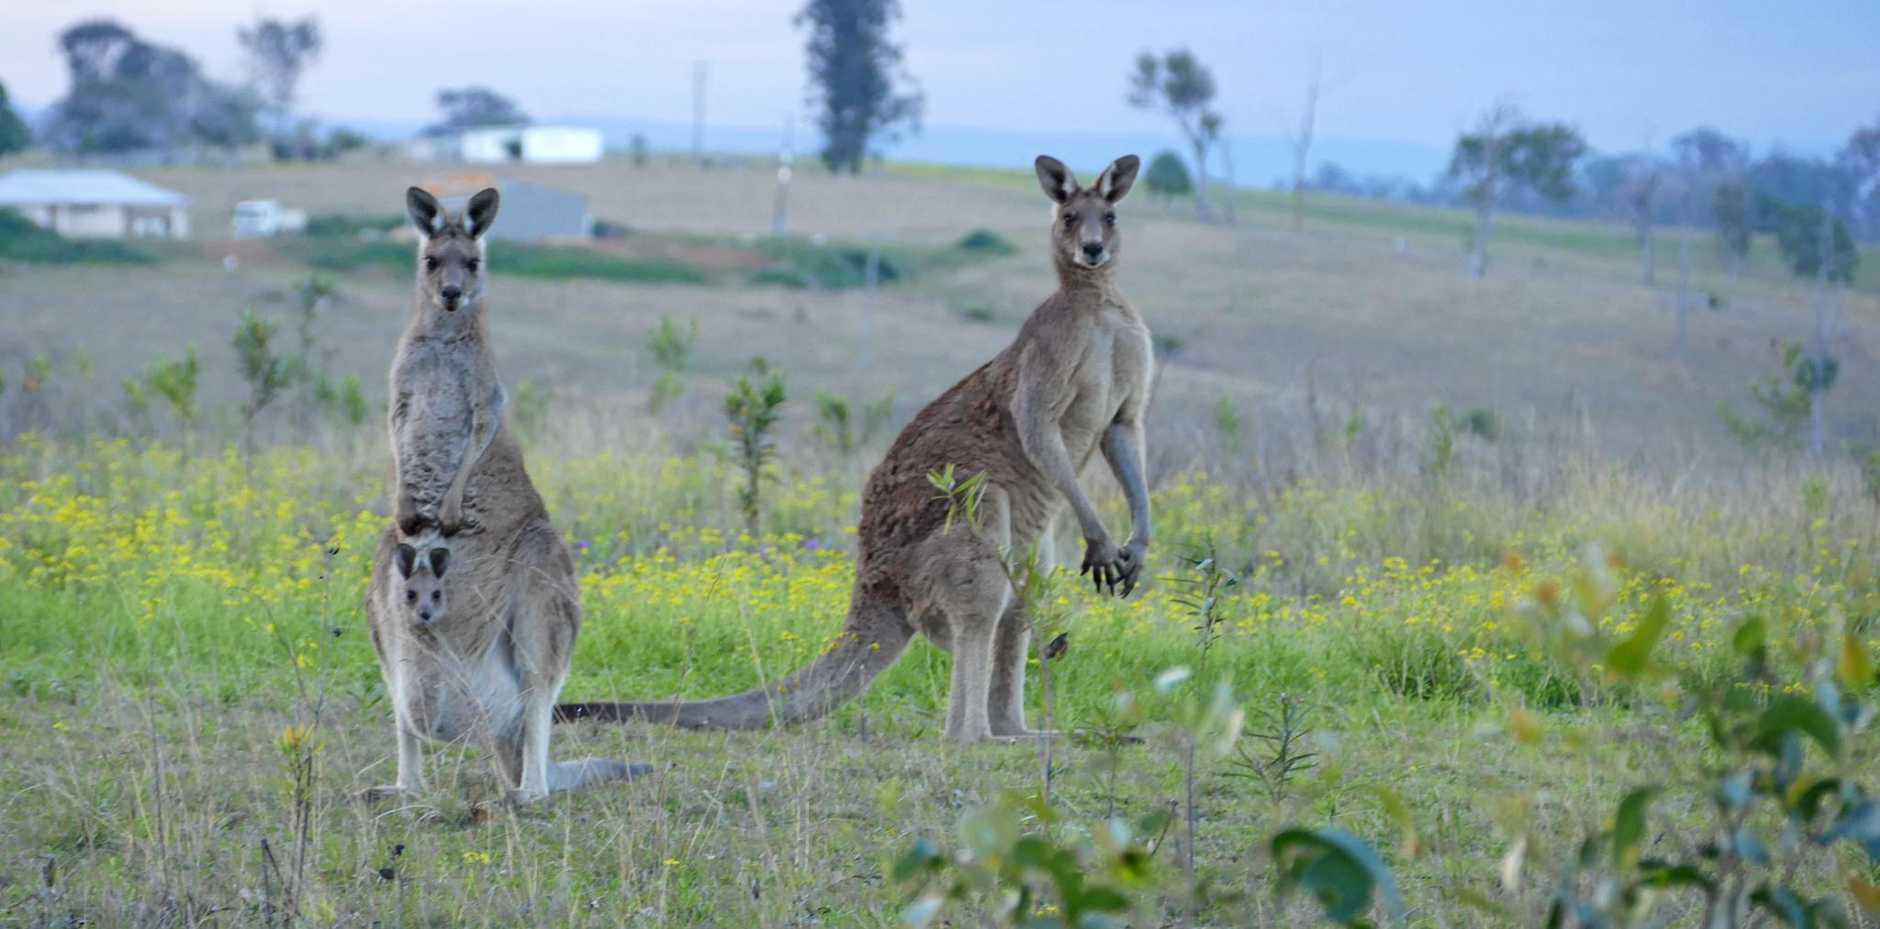 Large kangaroos like this picture near the golf course at South Grafton, have been known to attack people in the yards of their homes.